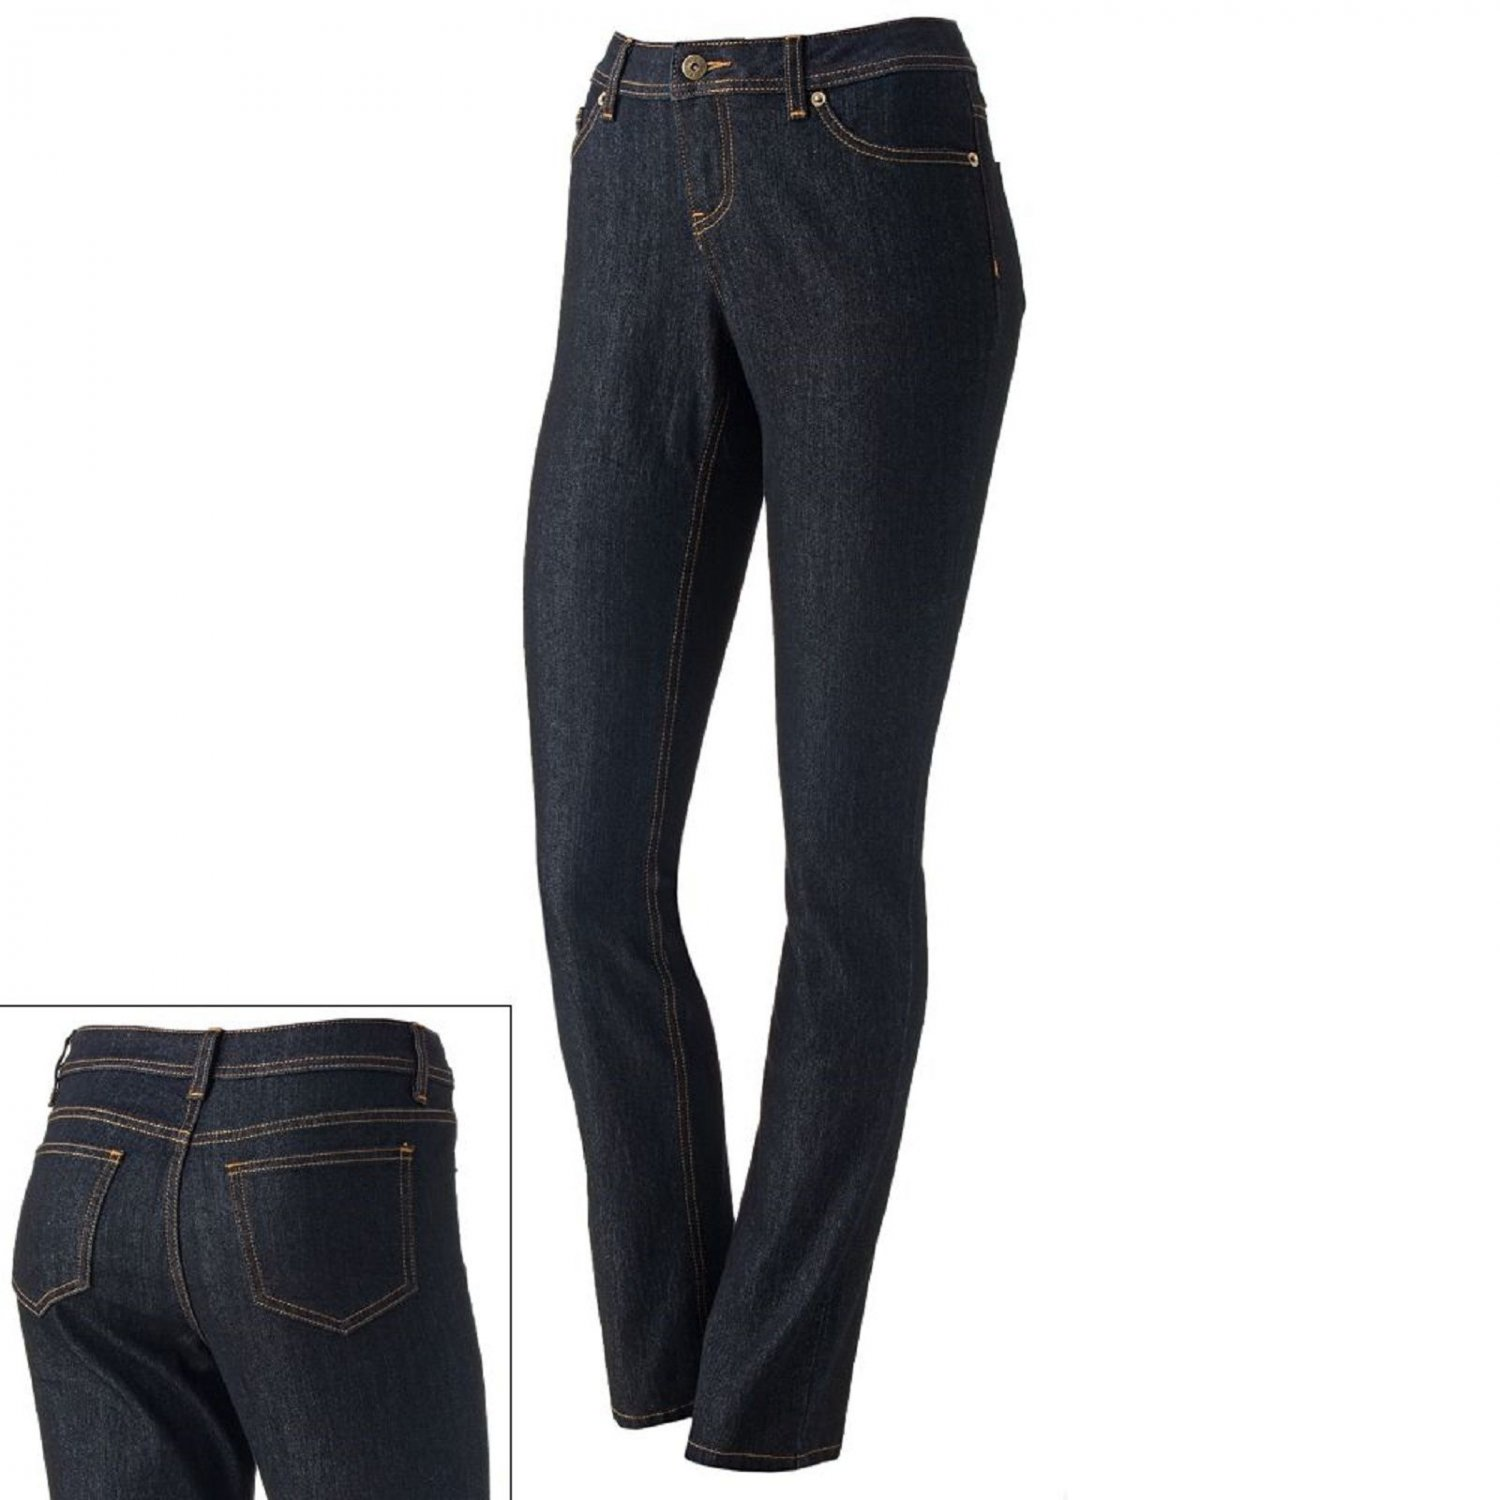 SO Juniors size 3 Super Skinny Jeans Short Dark Blue Rinse New